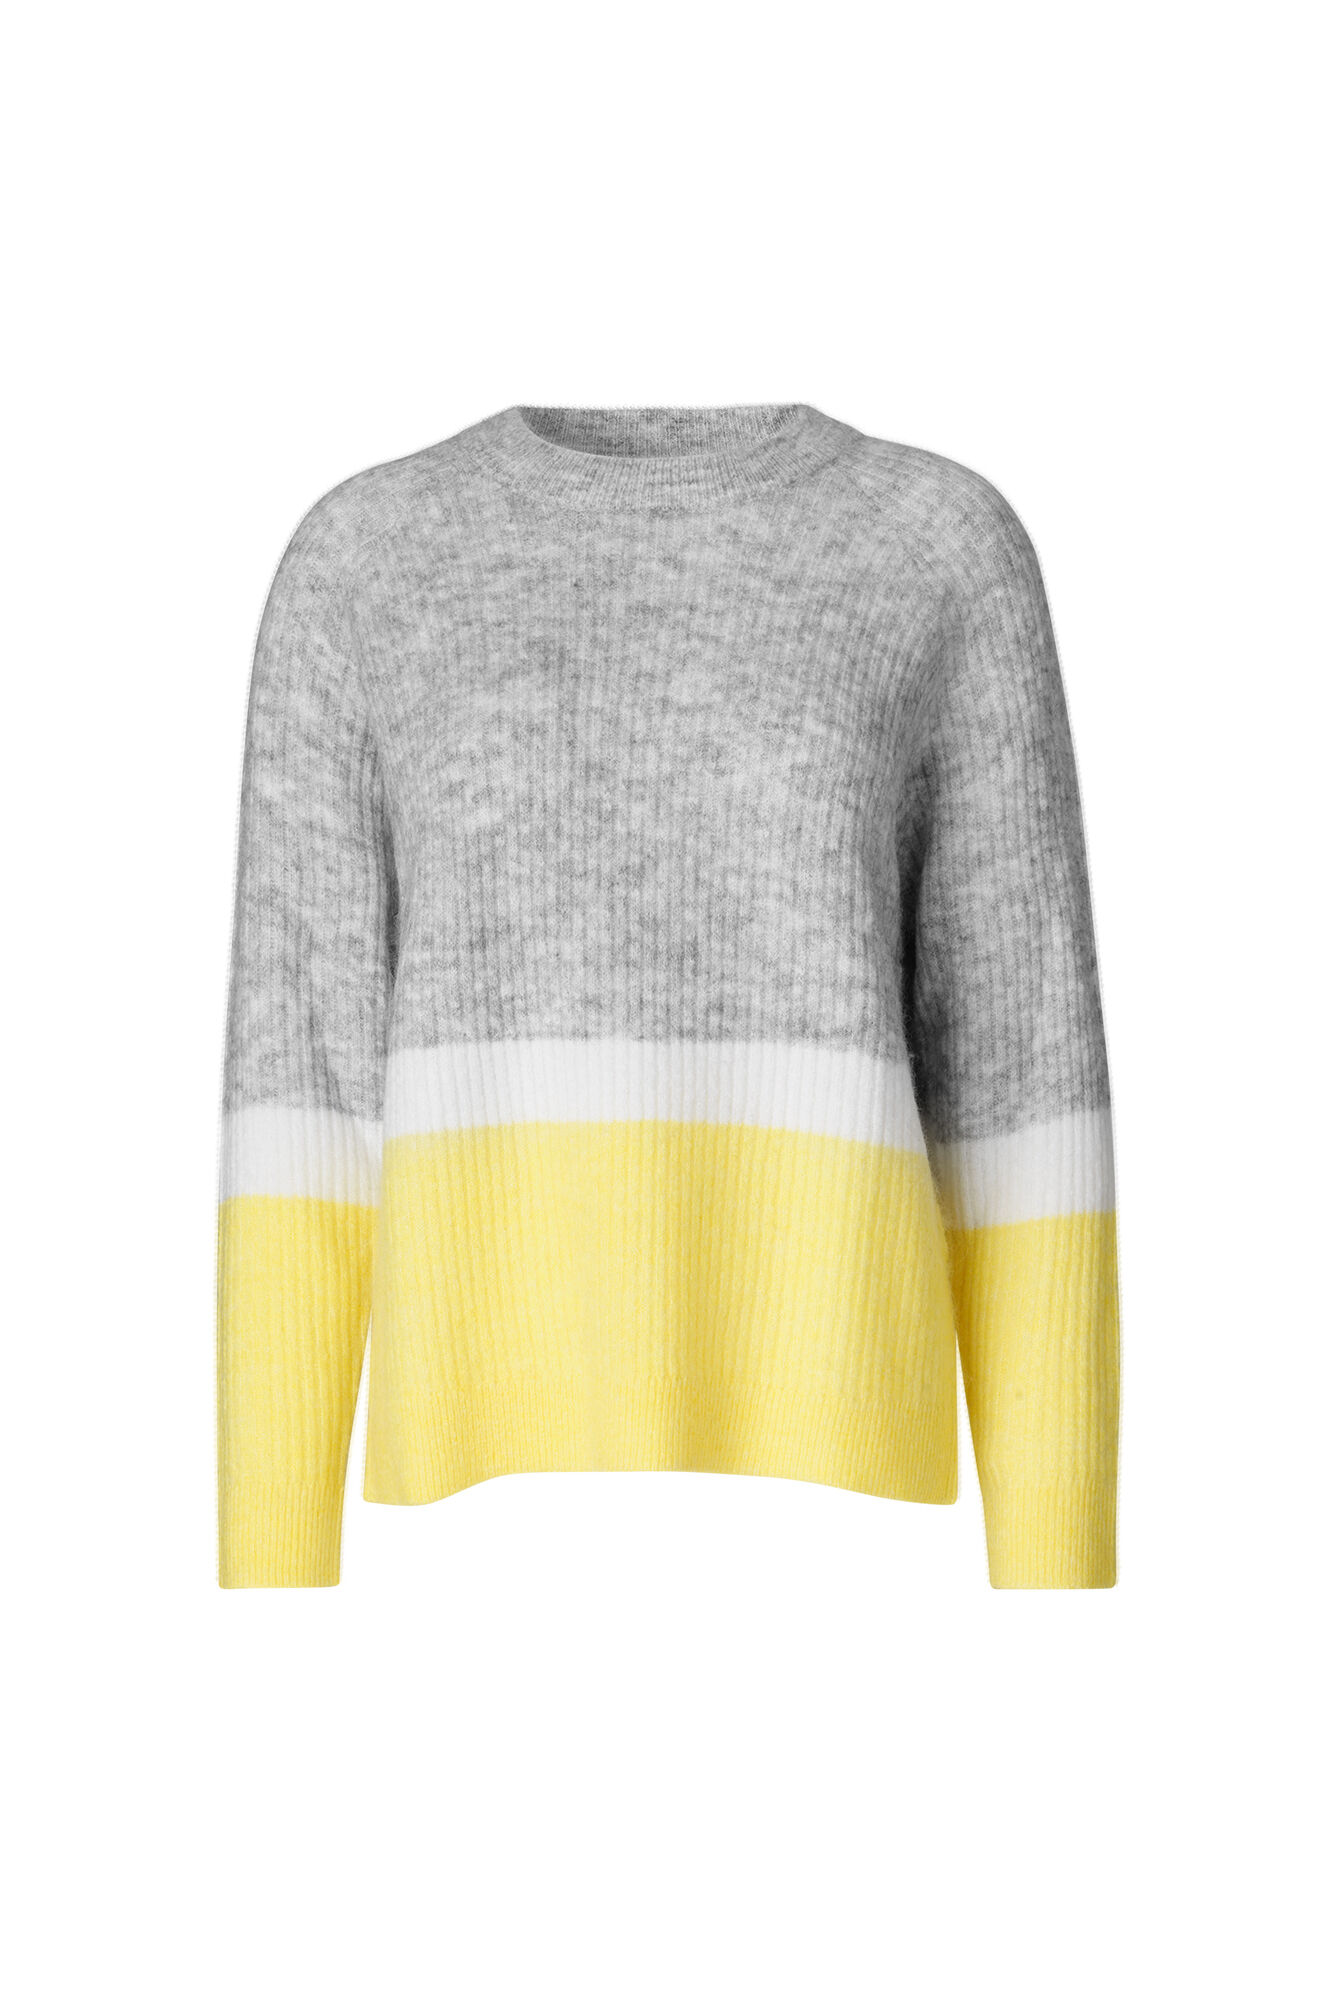 ENBOBO KNIT TB BLOCK 5132, LGM/YELLOW CREAM